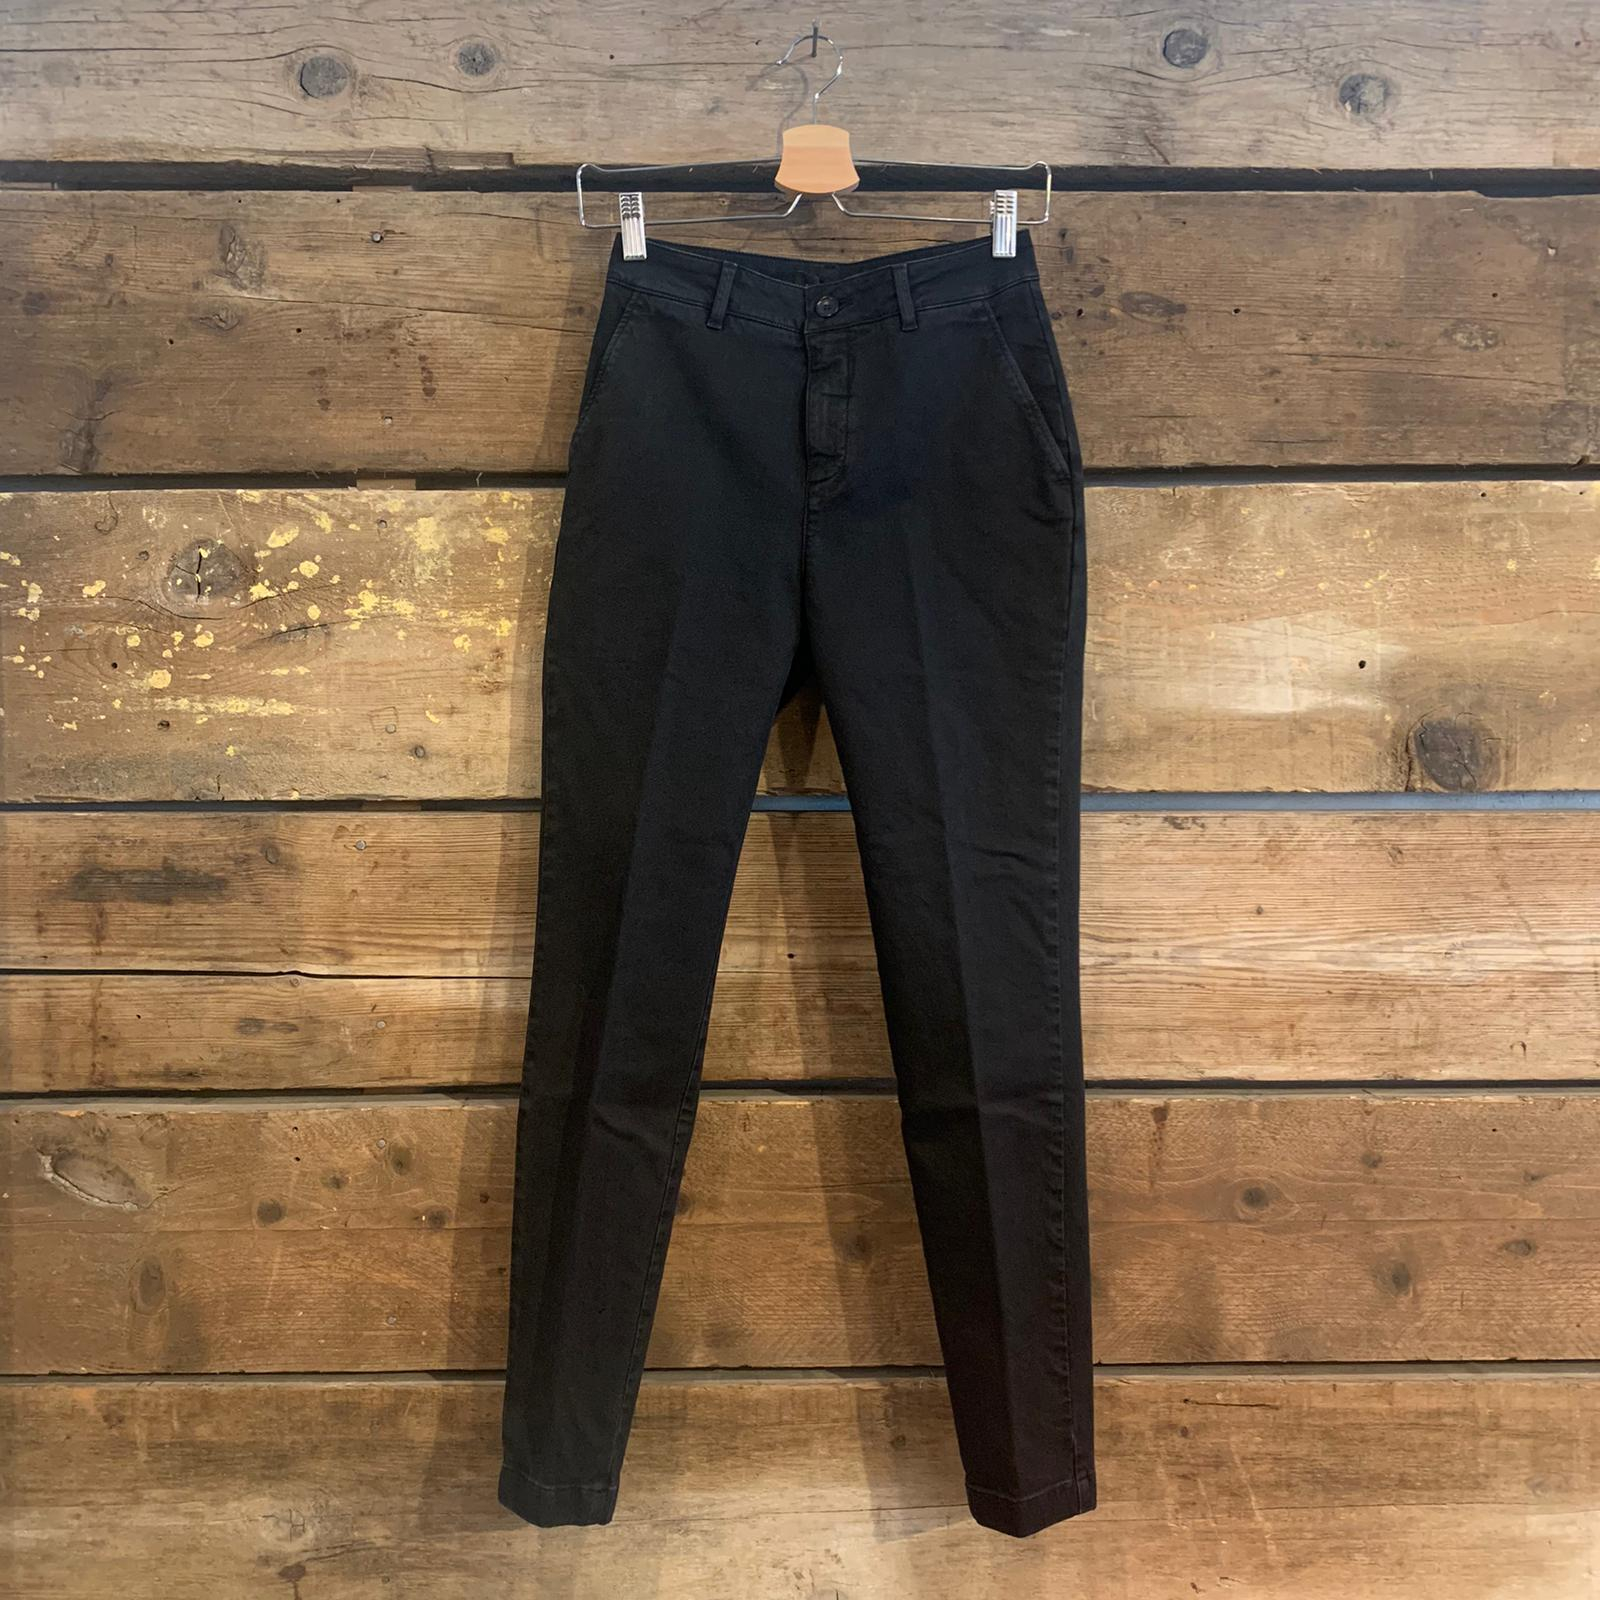 Pantalone Donna Department 5 Puff in Cotone Slavato Nero